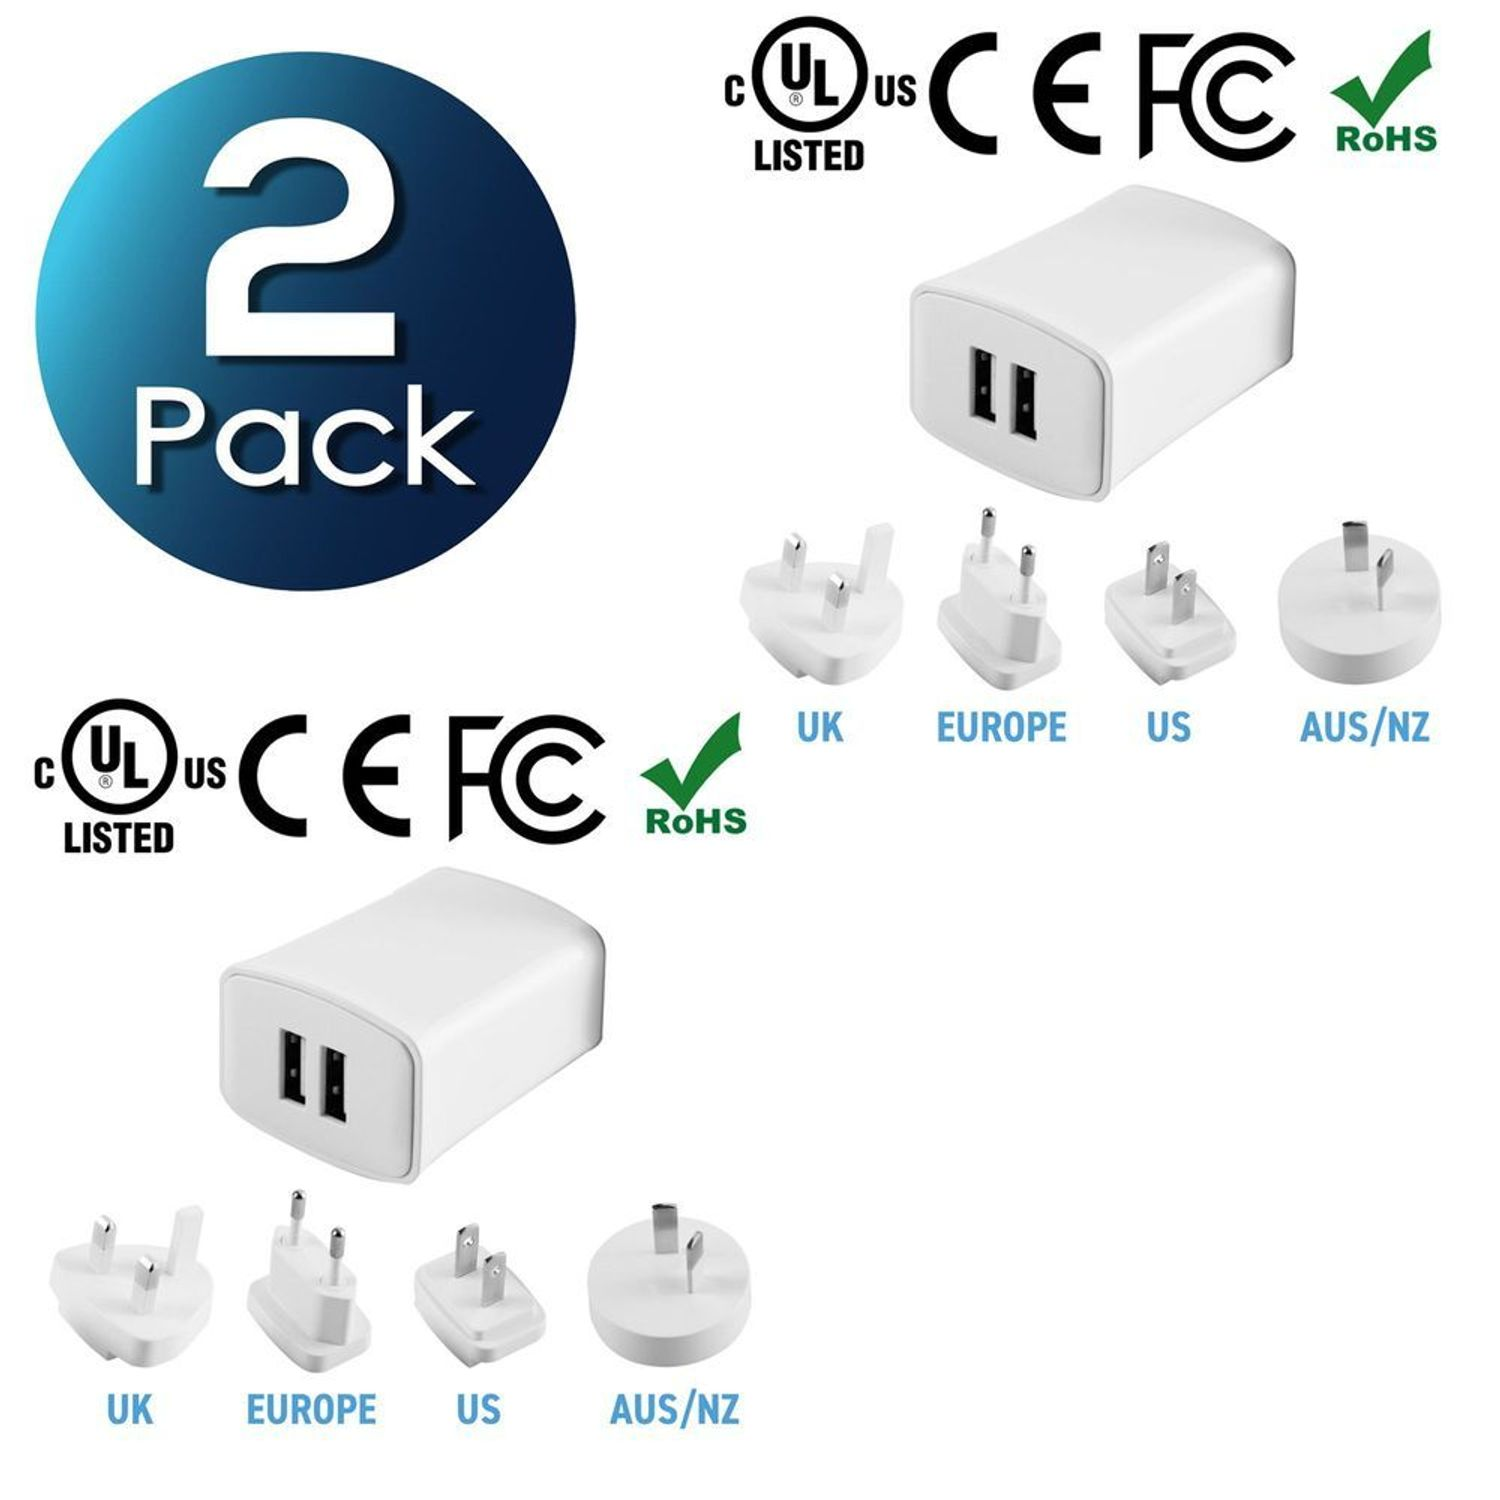 International Power Adapter for UK,EU,AU,US,150 Countries Ultra-Compact Advanced Worldwide Plug Adapter with LED Power Indicator Travel Adapter LezGo All-in-one Universal Adapter 4-Port USB Type C